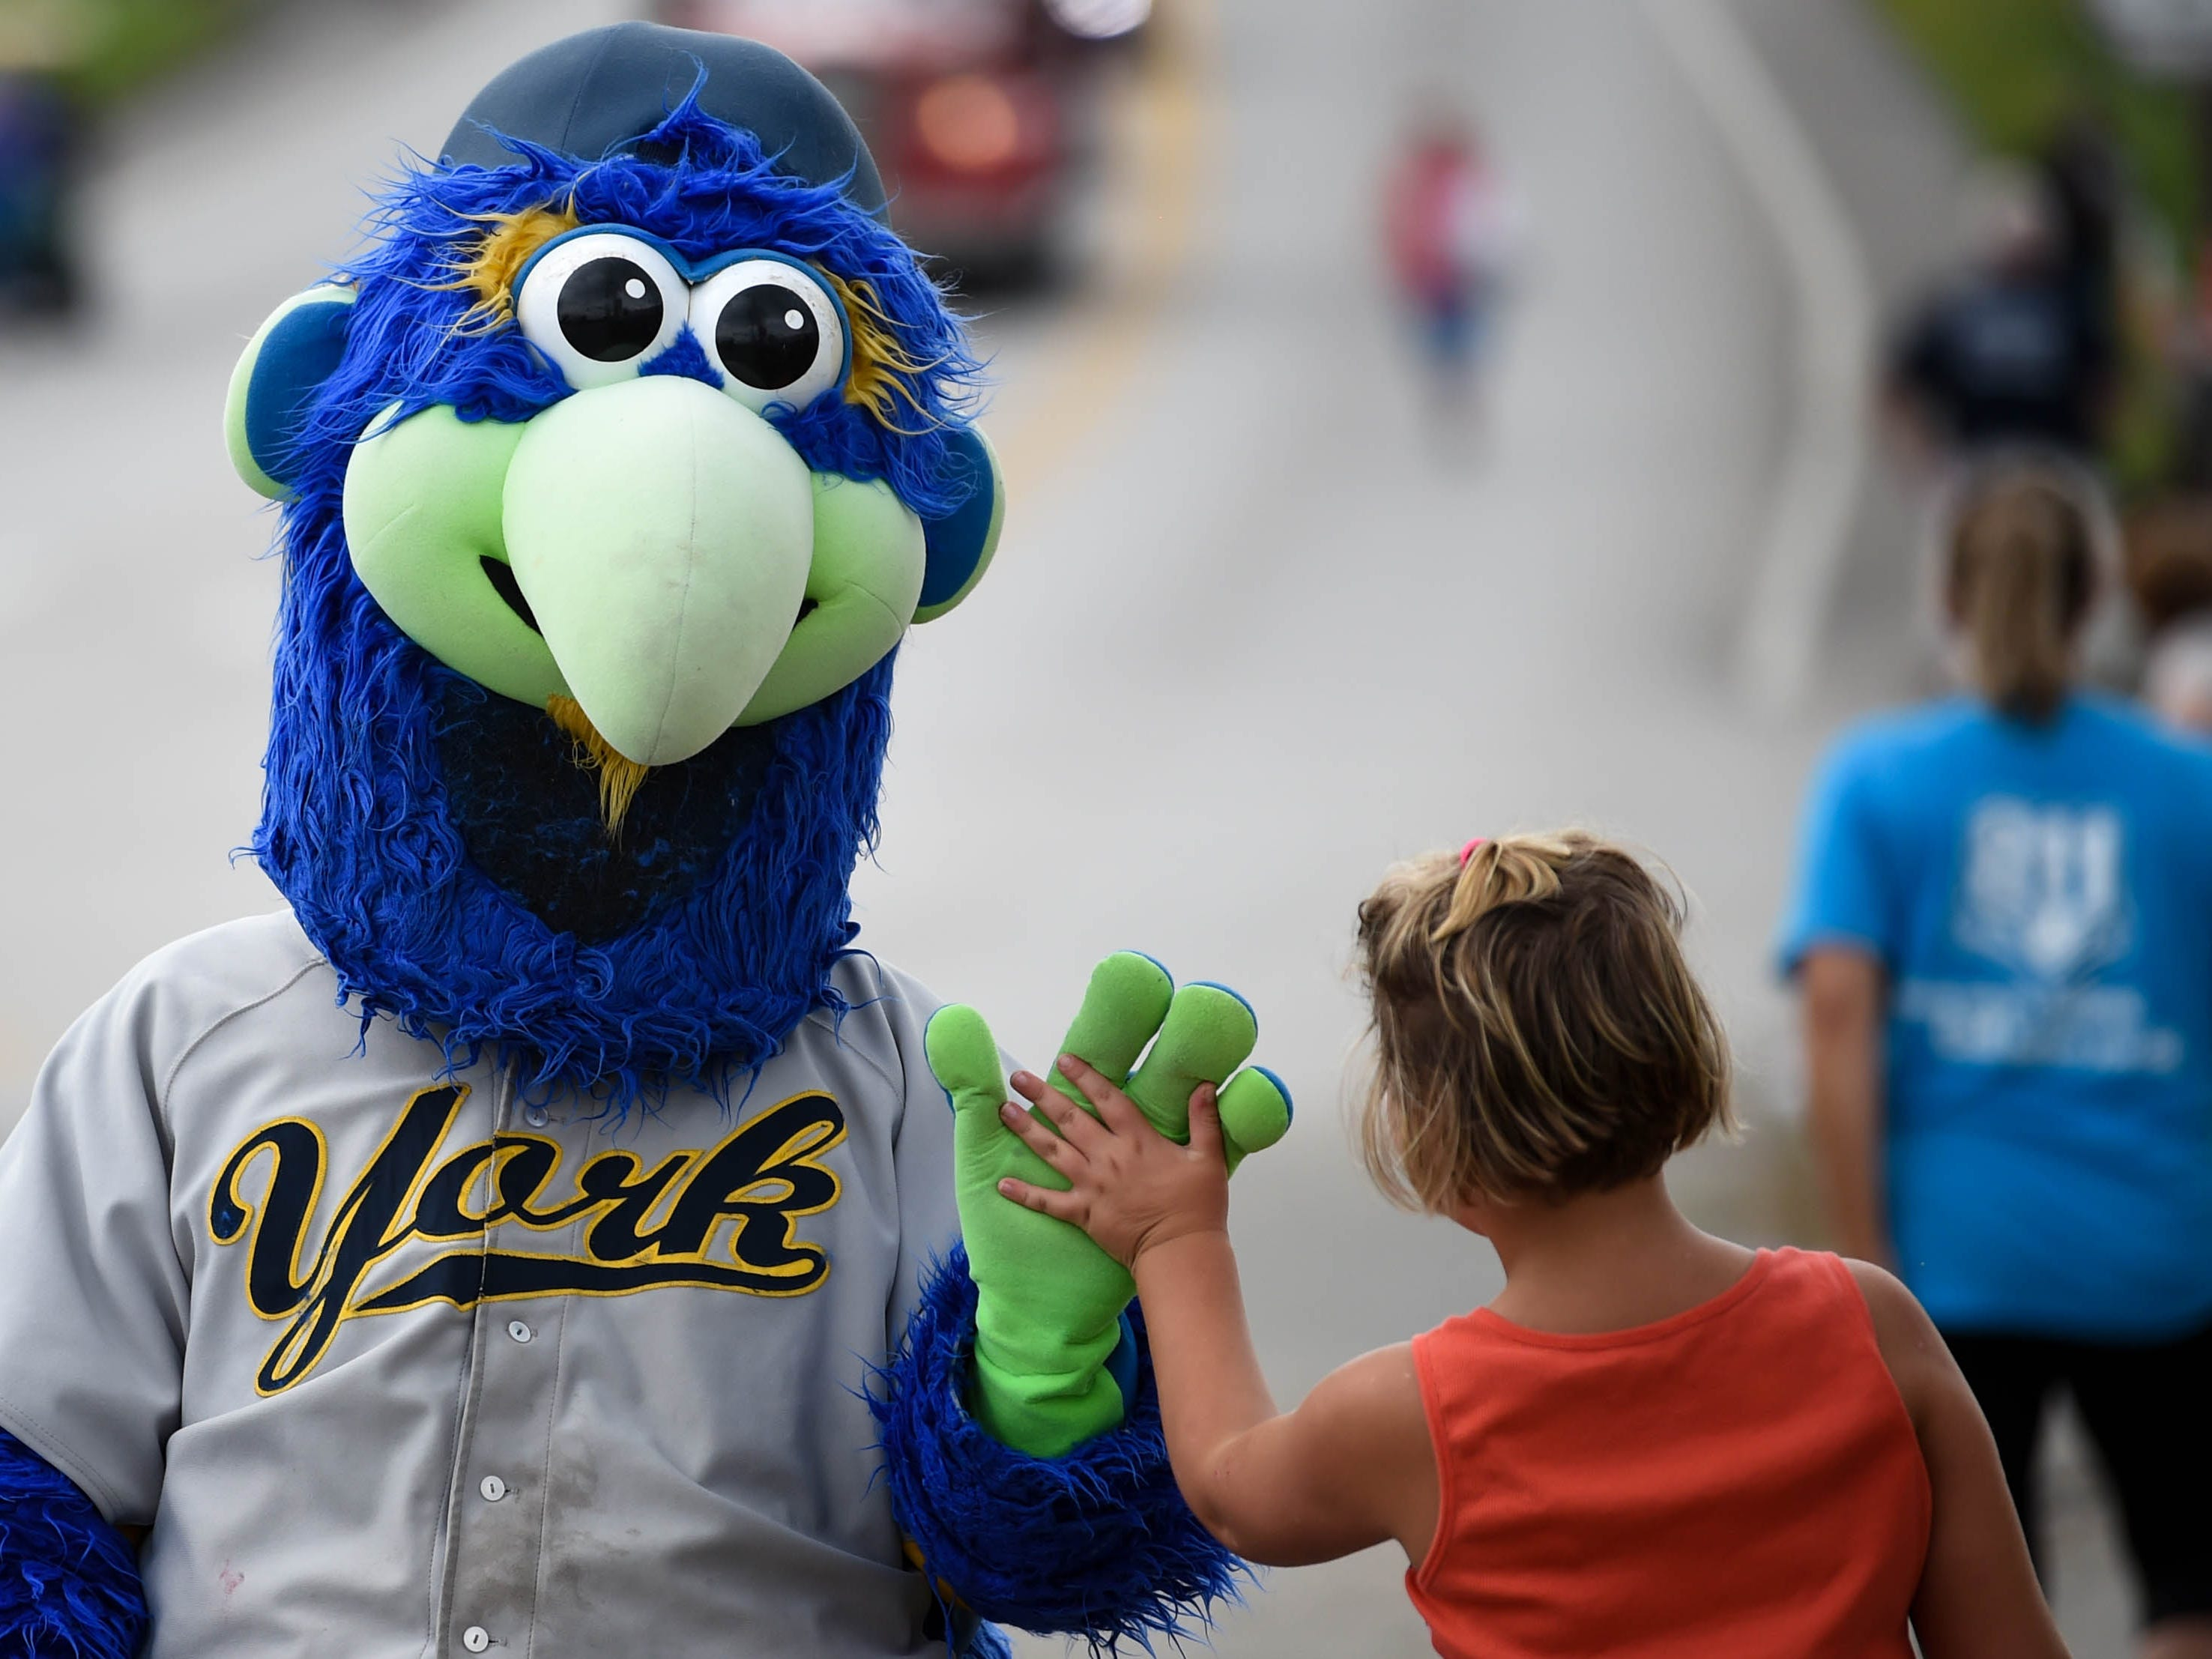 York Revolution's Downtown high-fives a parade goer during the York County Firemen's Parade, celebrating Alert Fire Company's 100th year, Saturday, August 18, 2018.